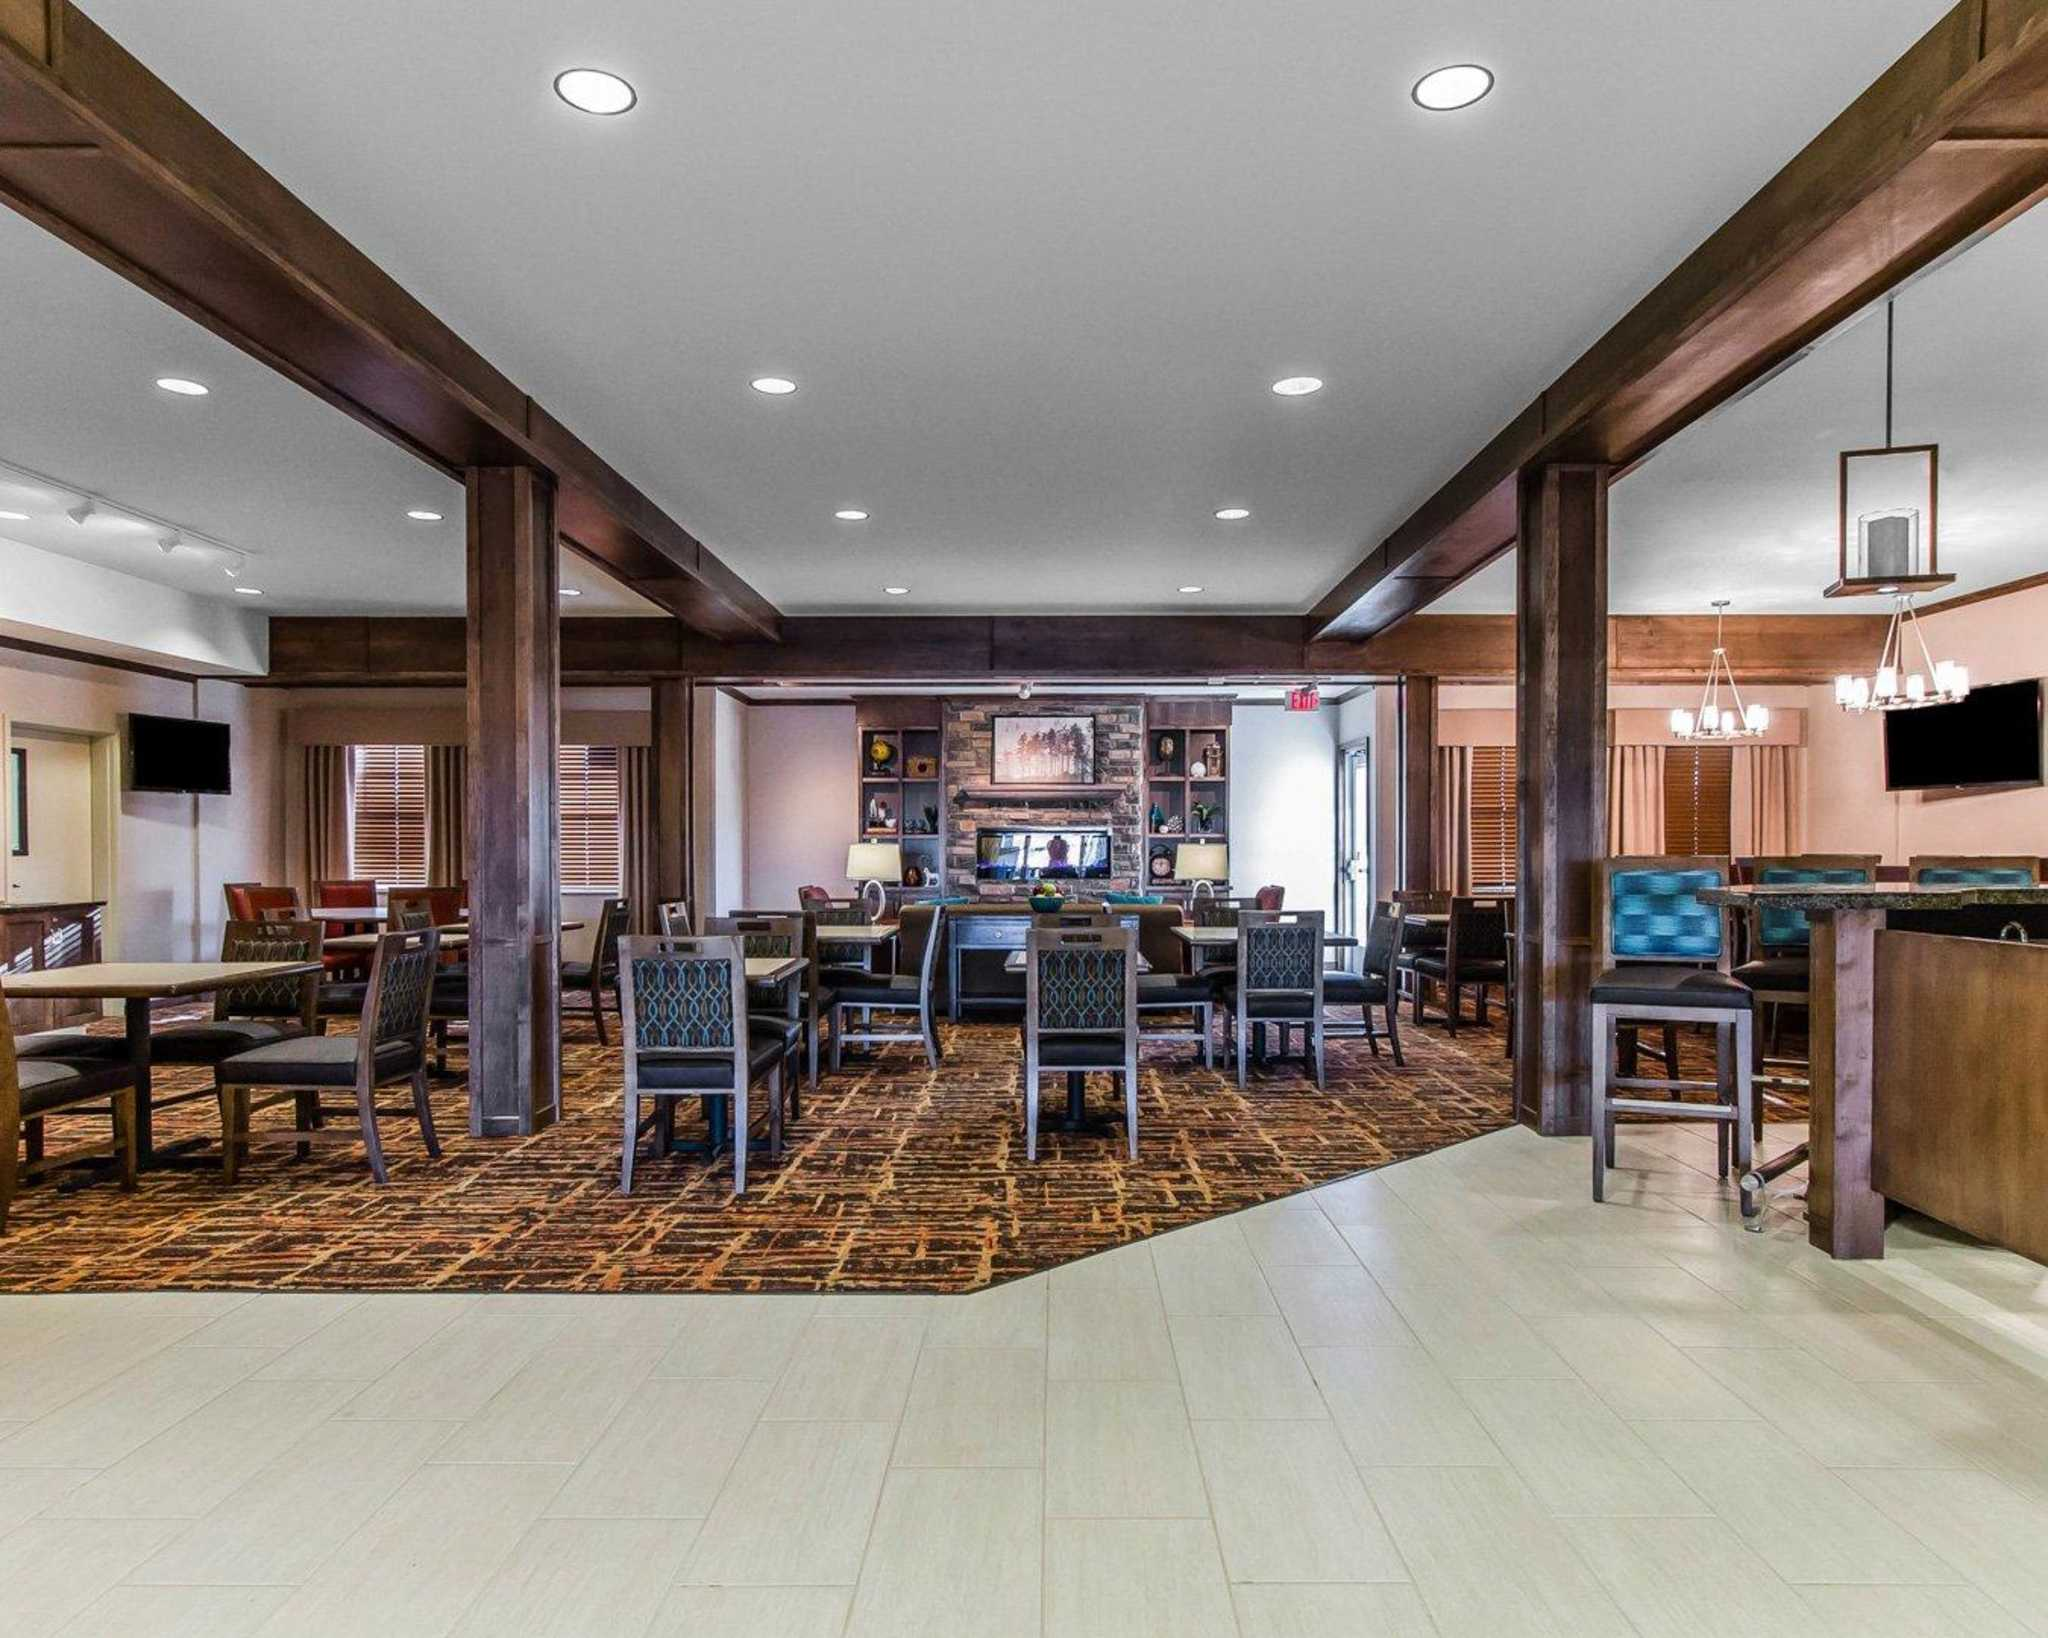 MainStay Suites Event Center image 9